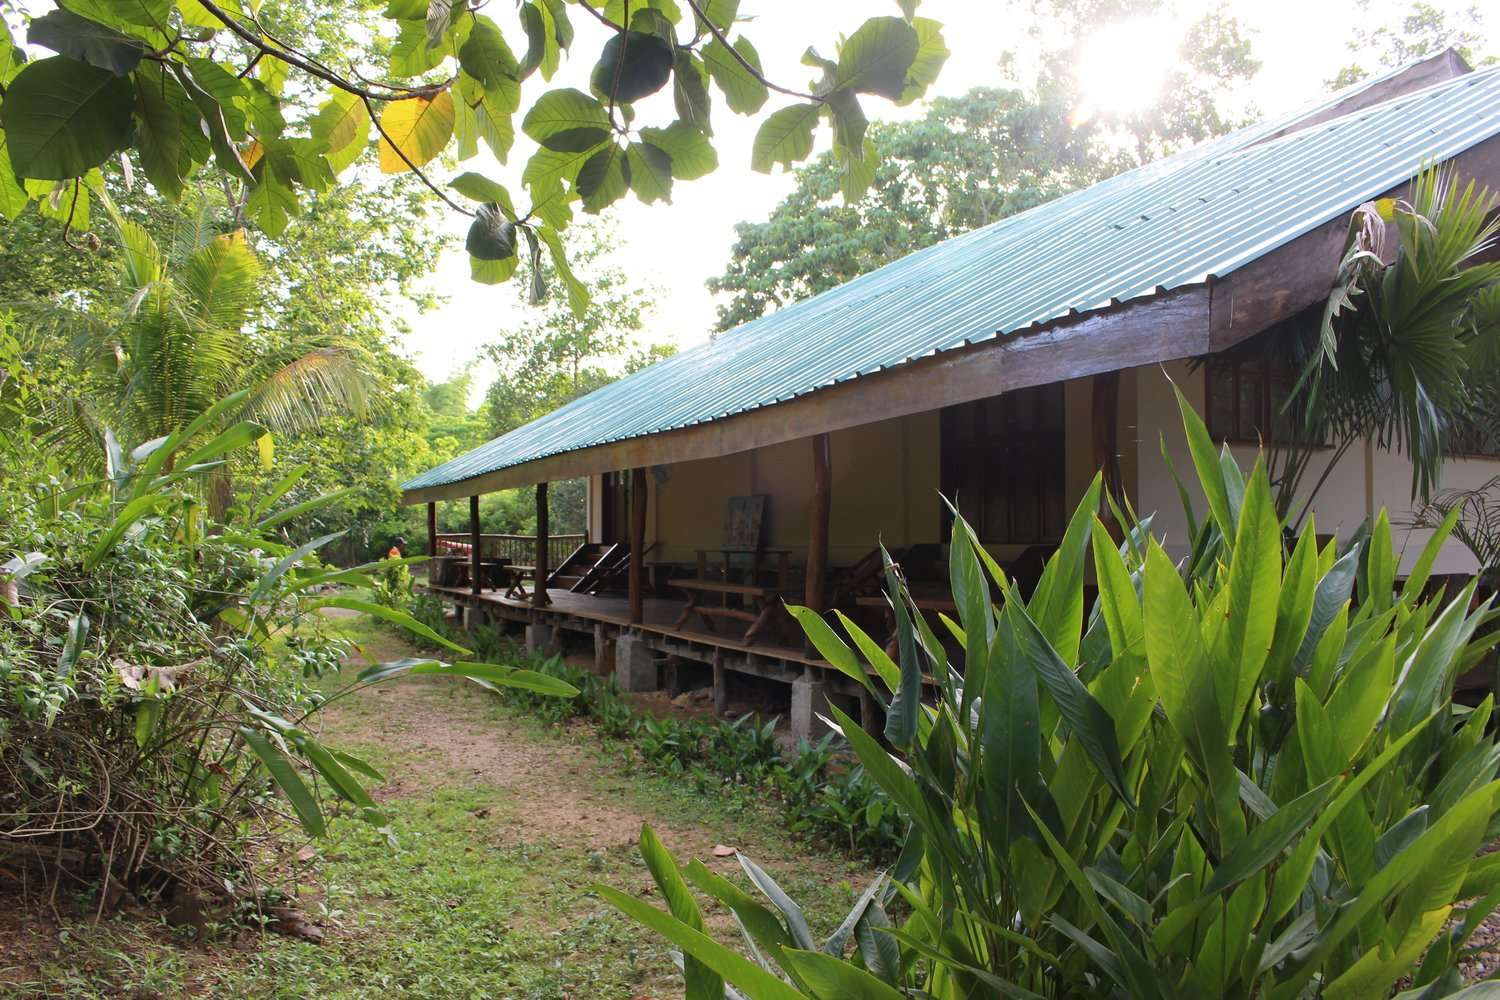 Sustainable rainforest lodge surrounded by lush greenery at Casa Fidelis in Coron